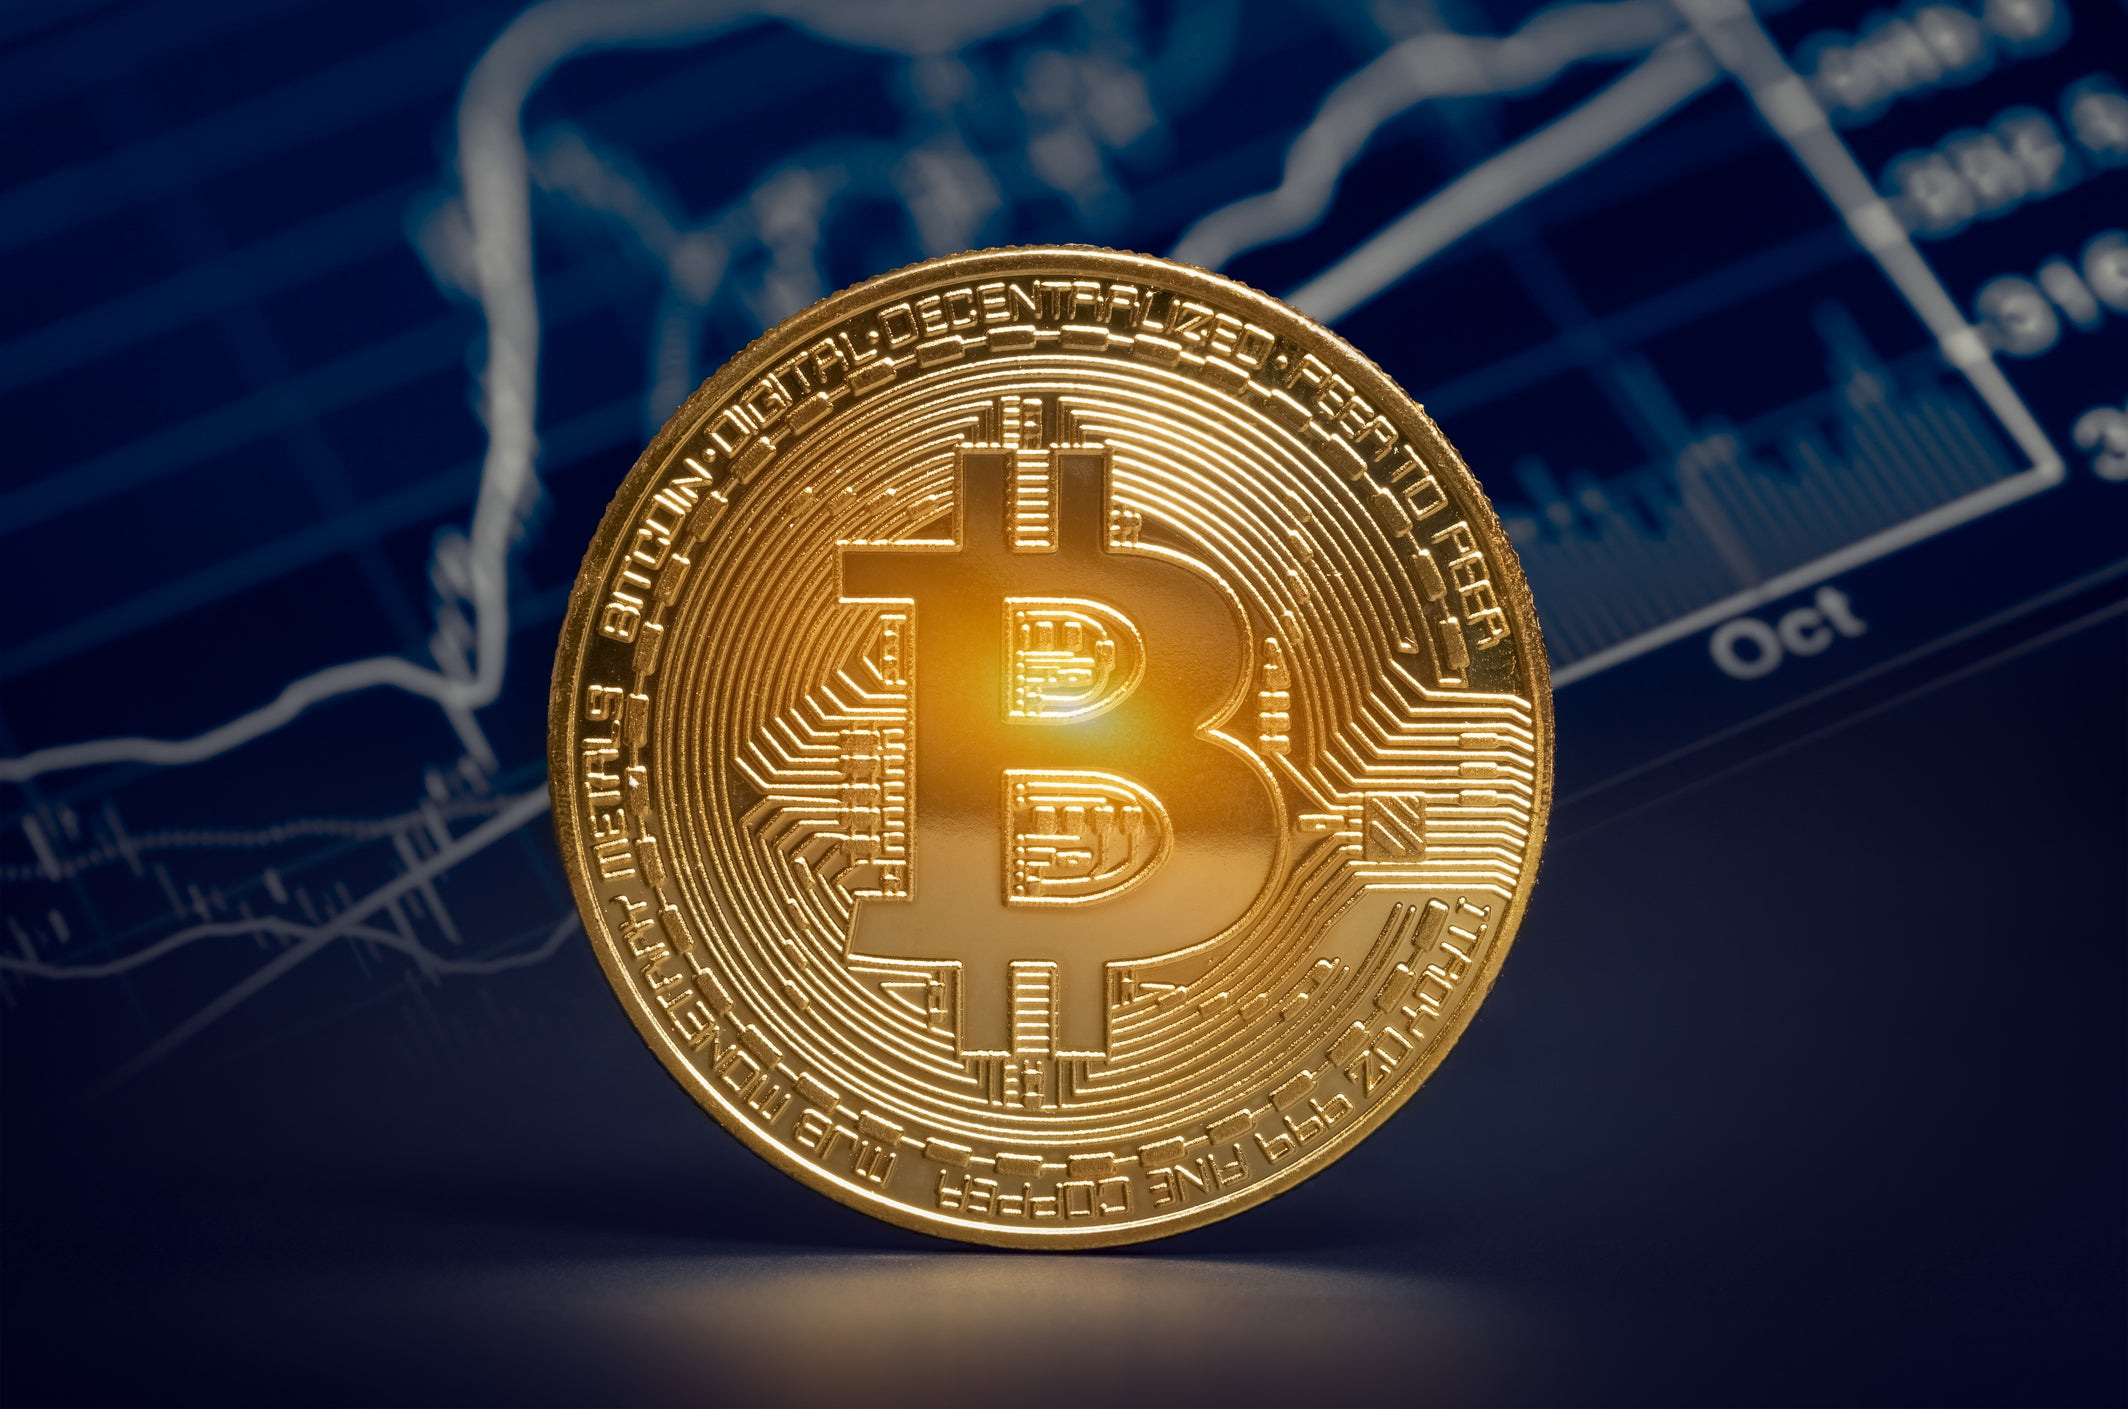 Forget Bitcoin: These Growth Stocks Can Run Circles Around Crypto | The Motley Fool